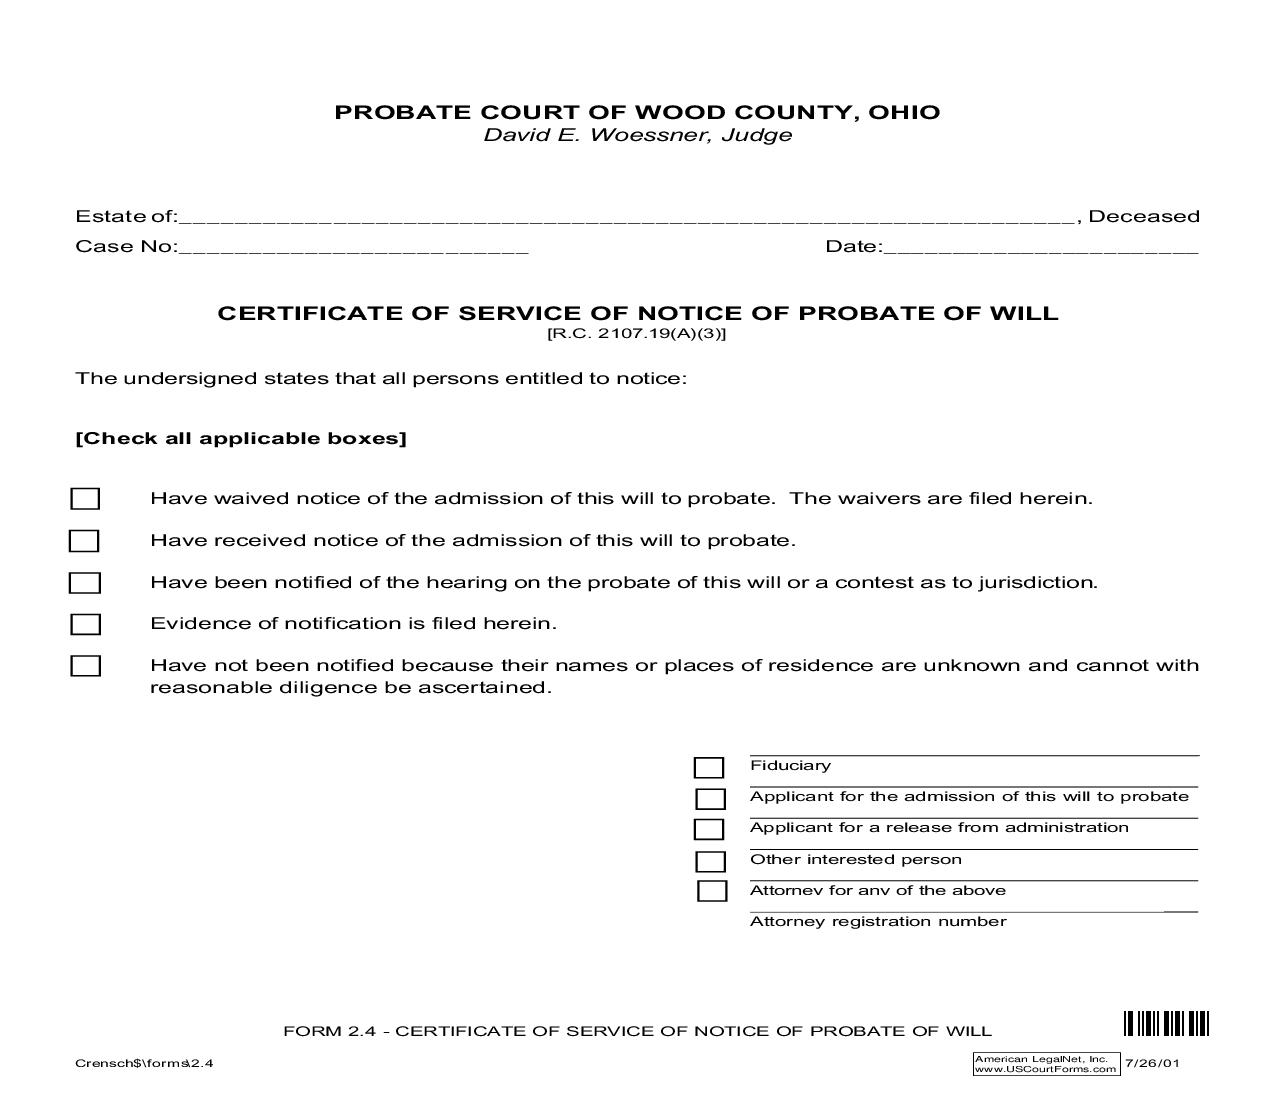 Certificate Of Service Of Notice Of Probate Of Will {2.4} | Pdf Fpdf Doc Docx | Ohio